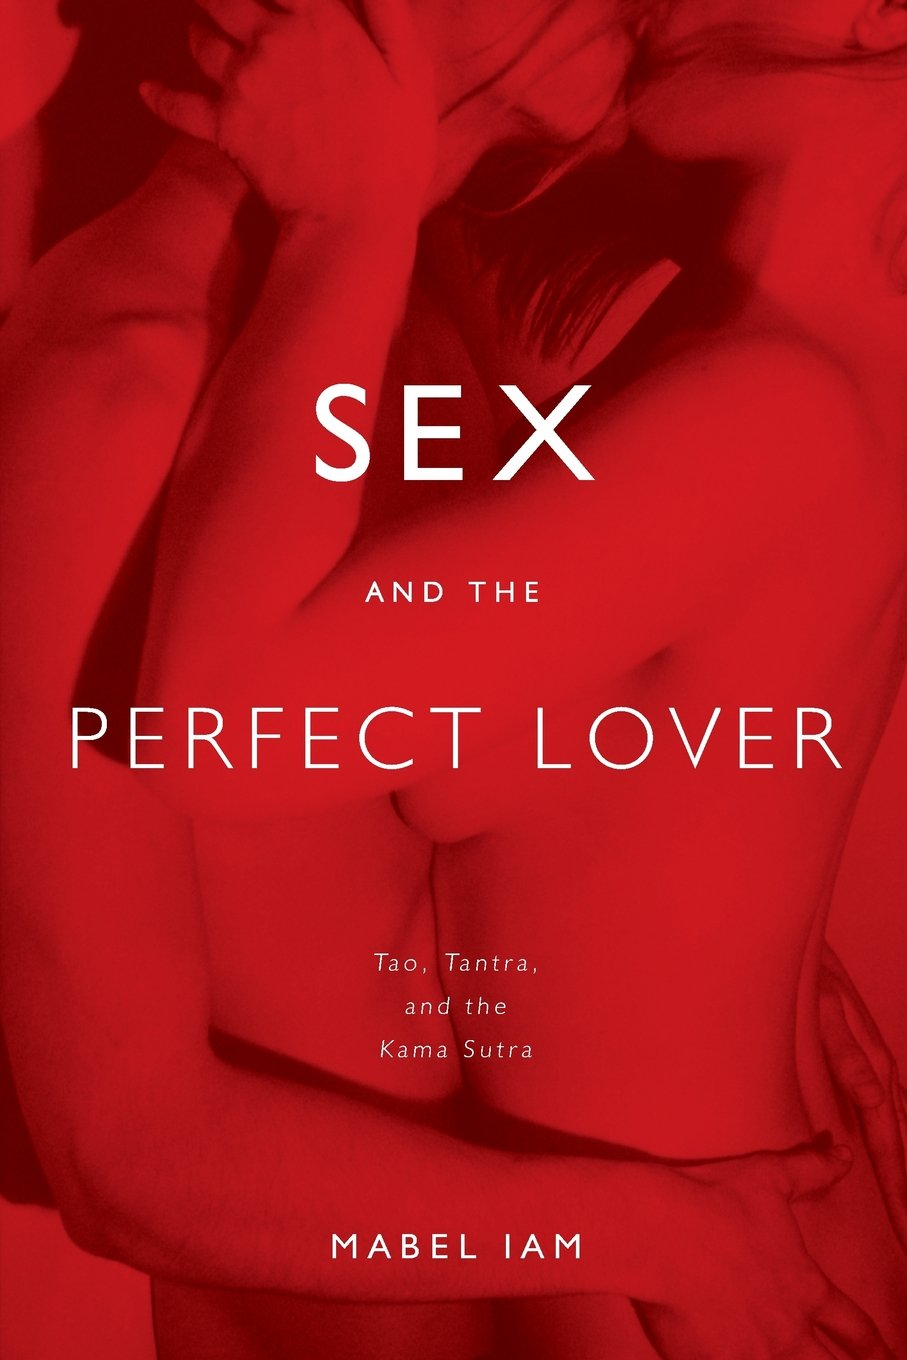 Sex and the Perfect Lover - Mabel Iam